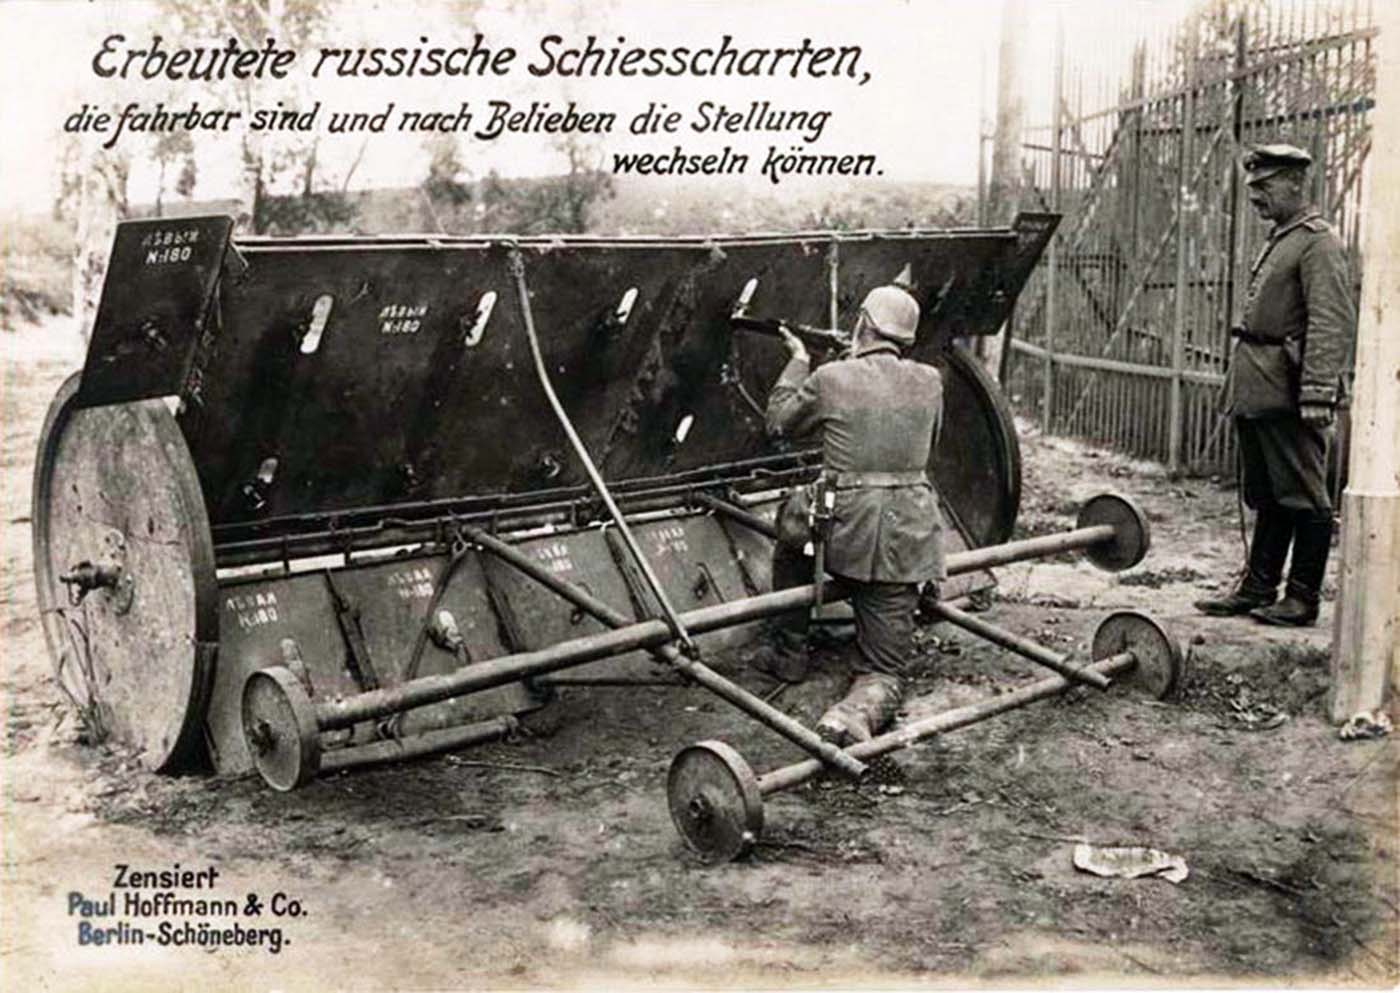 A Russian adjustable mobile shield captured by the Germans, 1914.